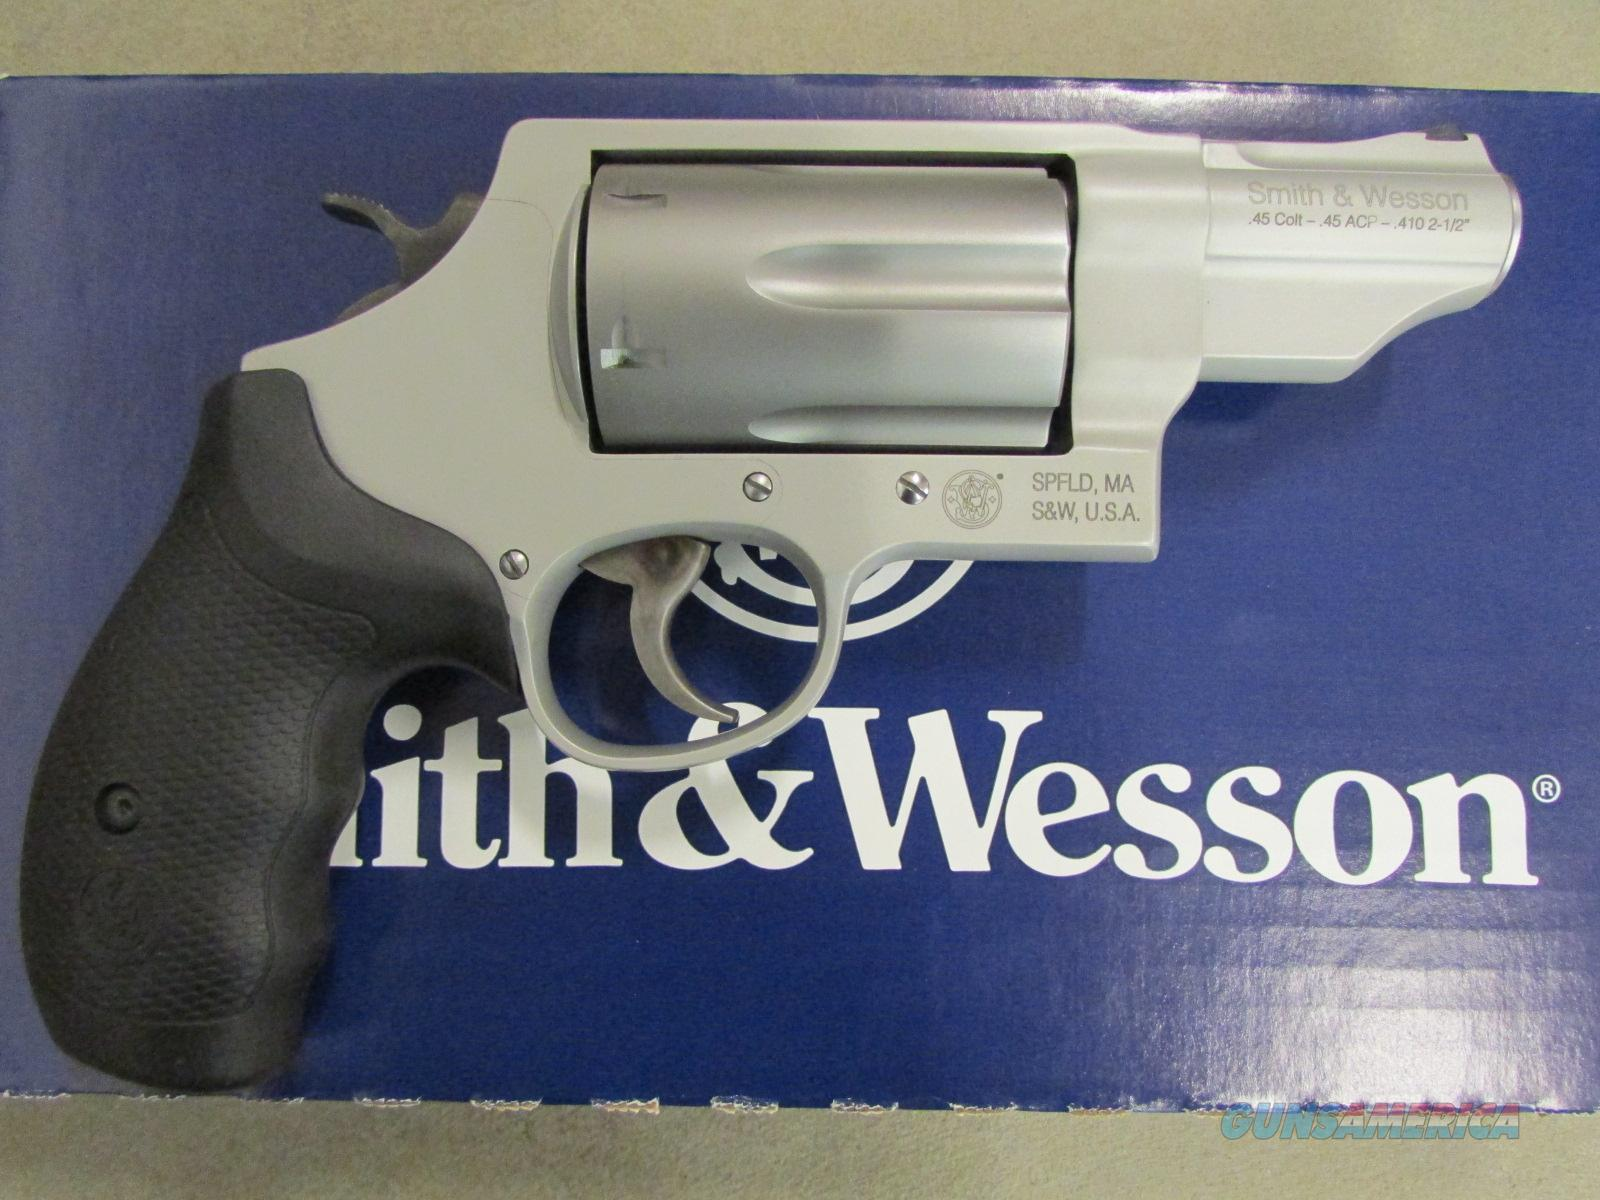 Smith & Wesson Stainless Governor .45 Colt/.410/.45 ACP Revolver 160410  Guns > Pistols > Smith & Wesson Revolvers > Full Frame Revolver